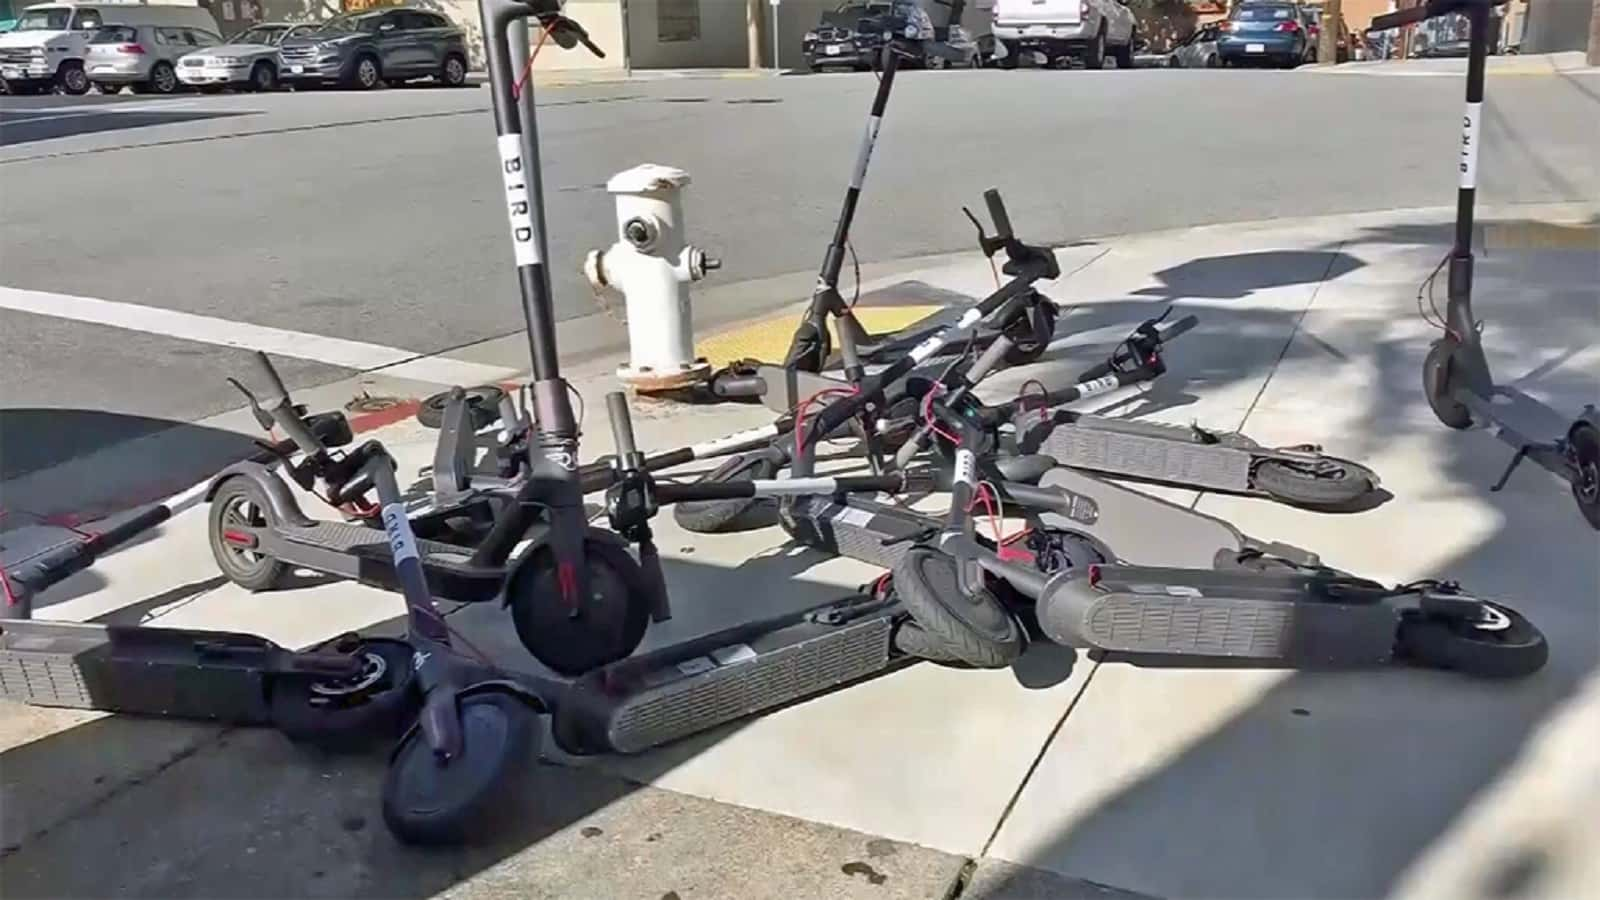 Scooters in SFO